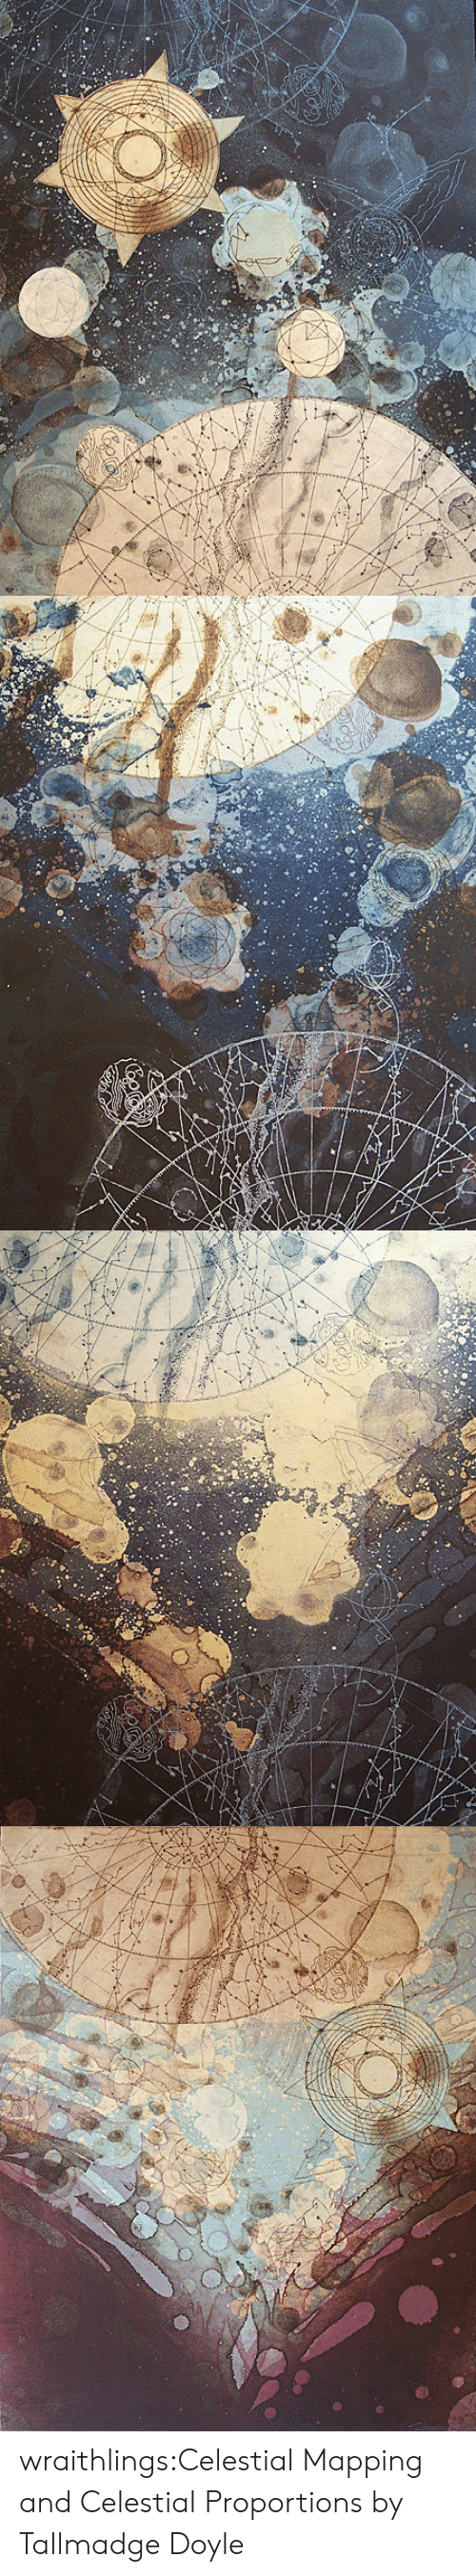 celestial: wraithlings:Celestial Mapping and Celestial Proportions by Tallmadge Doyle